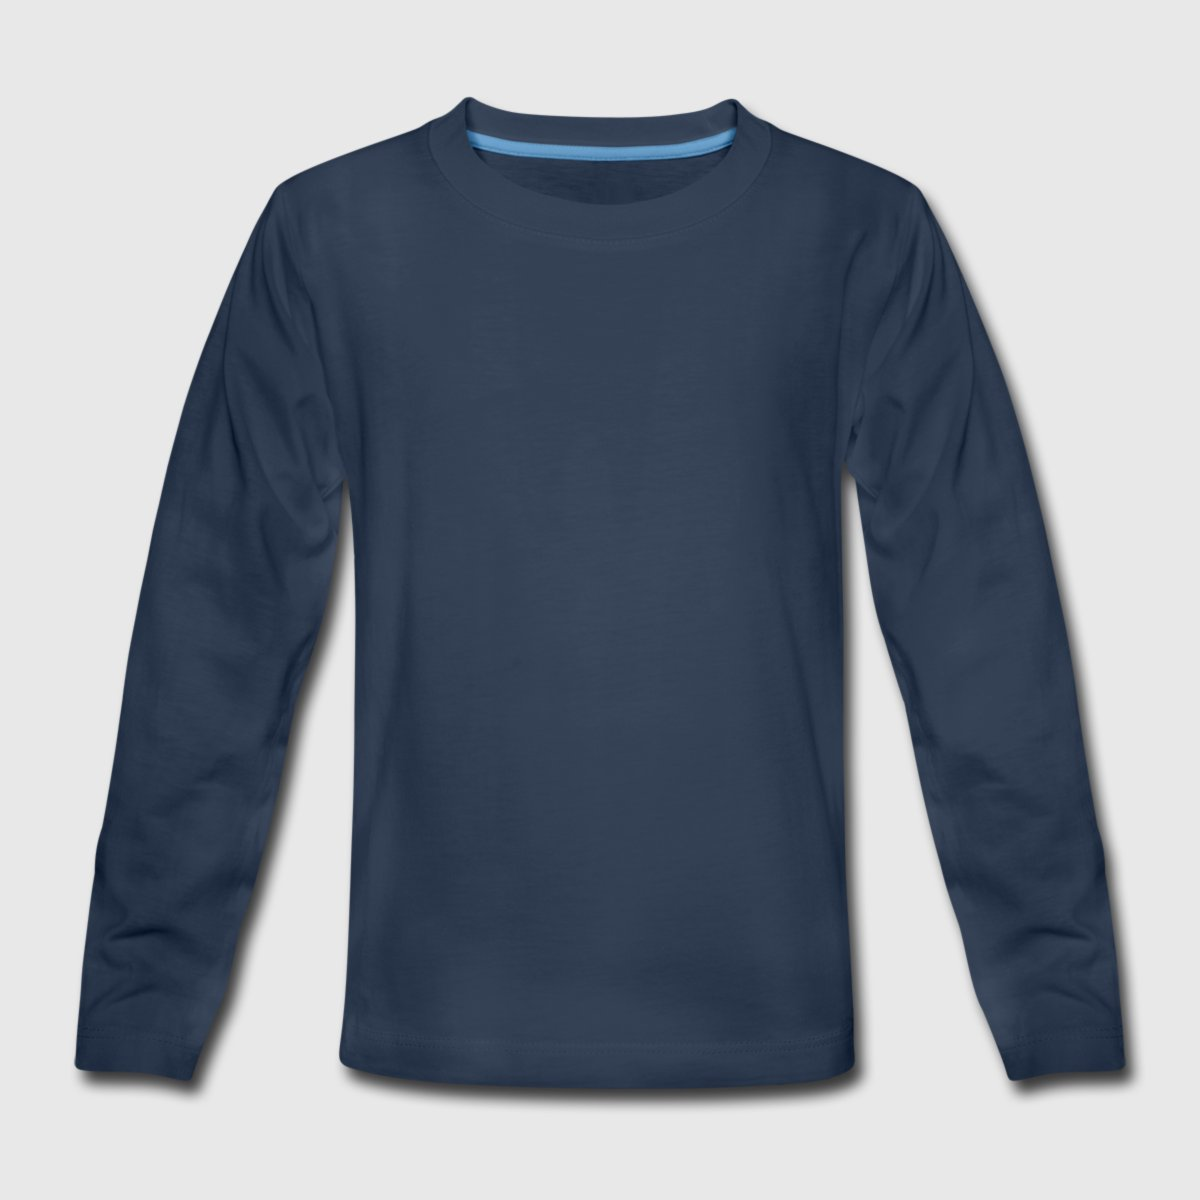 Custom Long Sleeve Shirts Spreadshirt